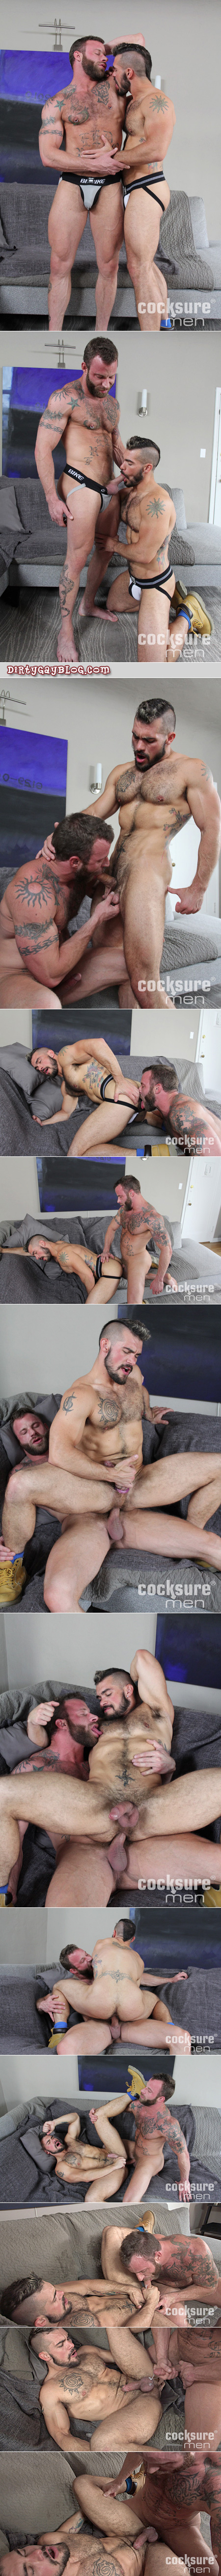 Young muscle bears in jockstraps fucking bareback.